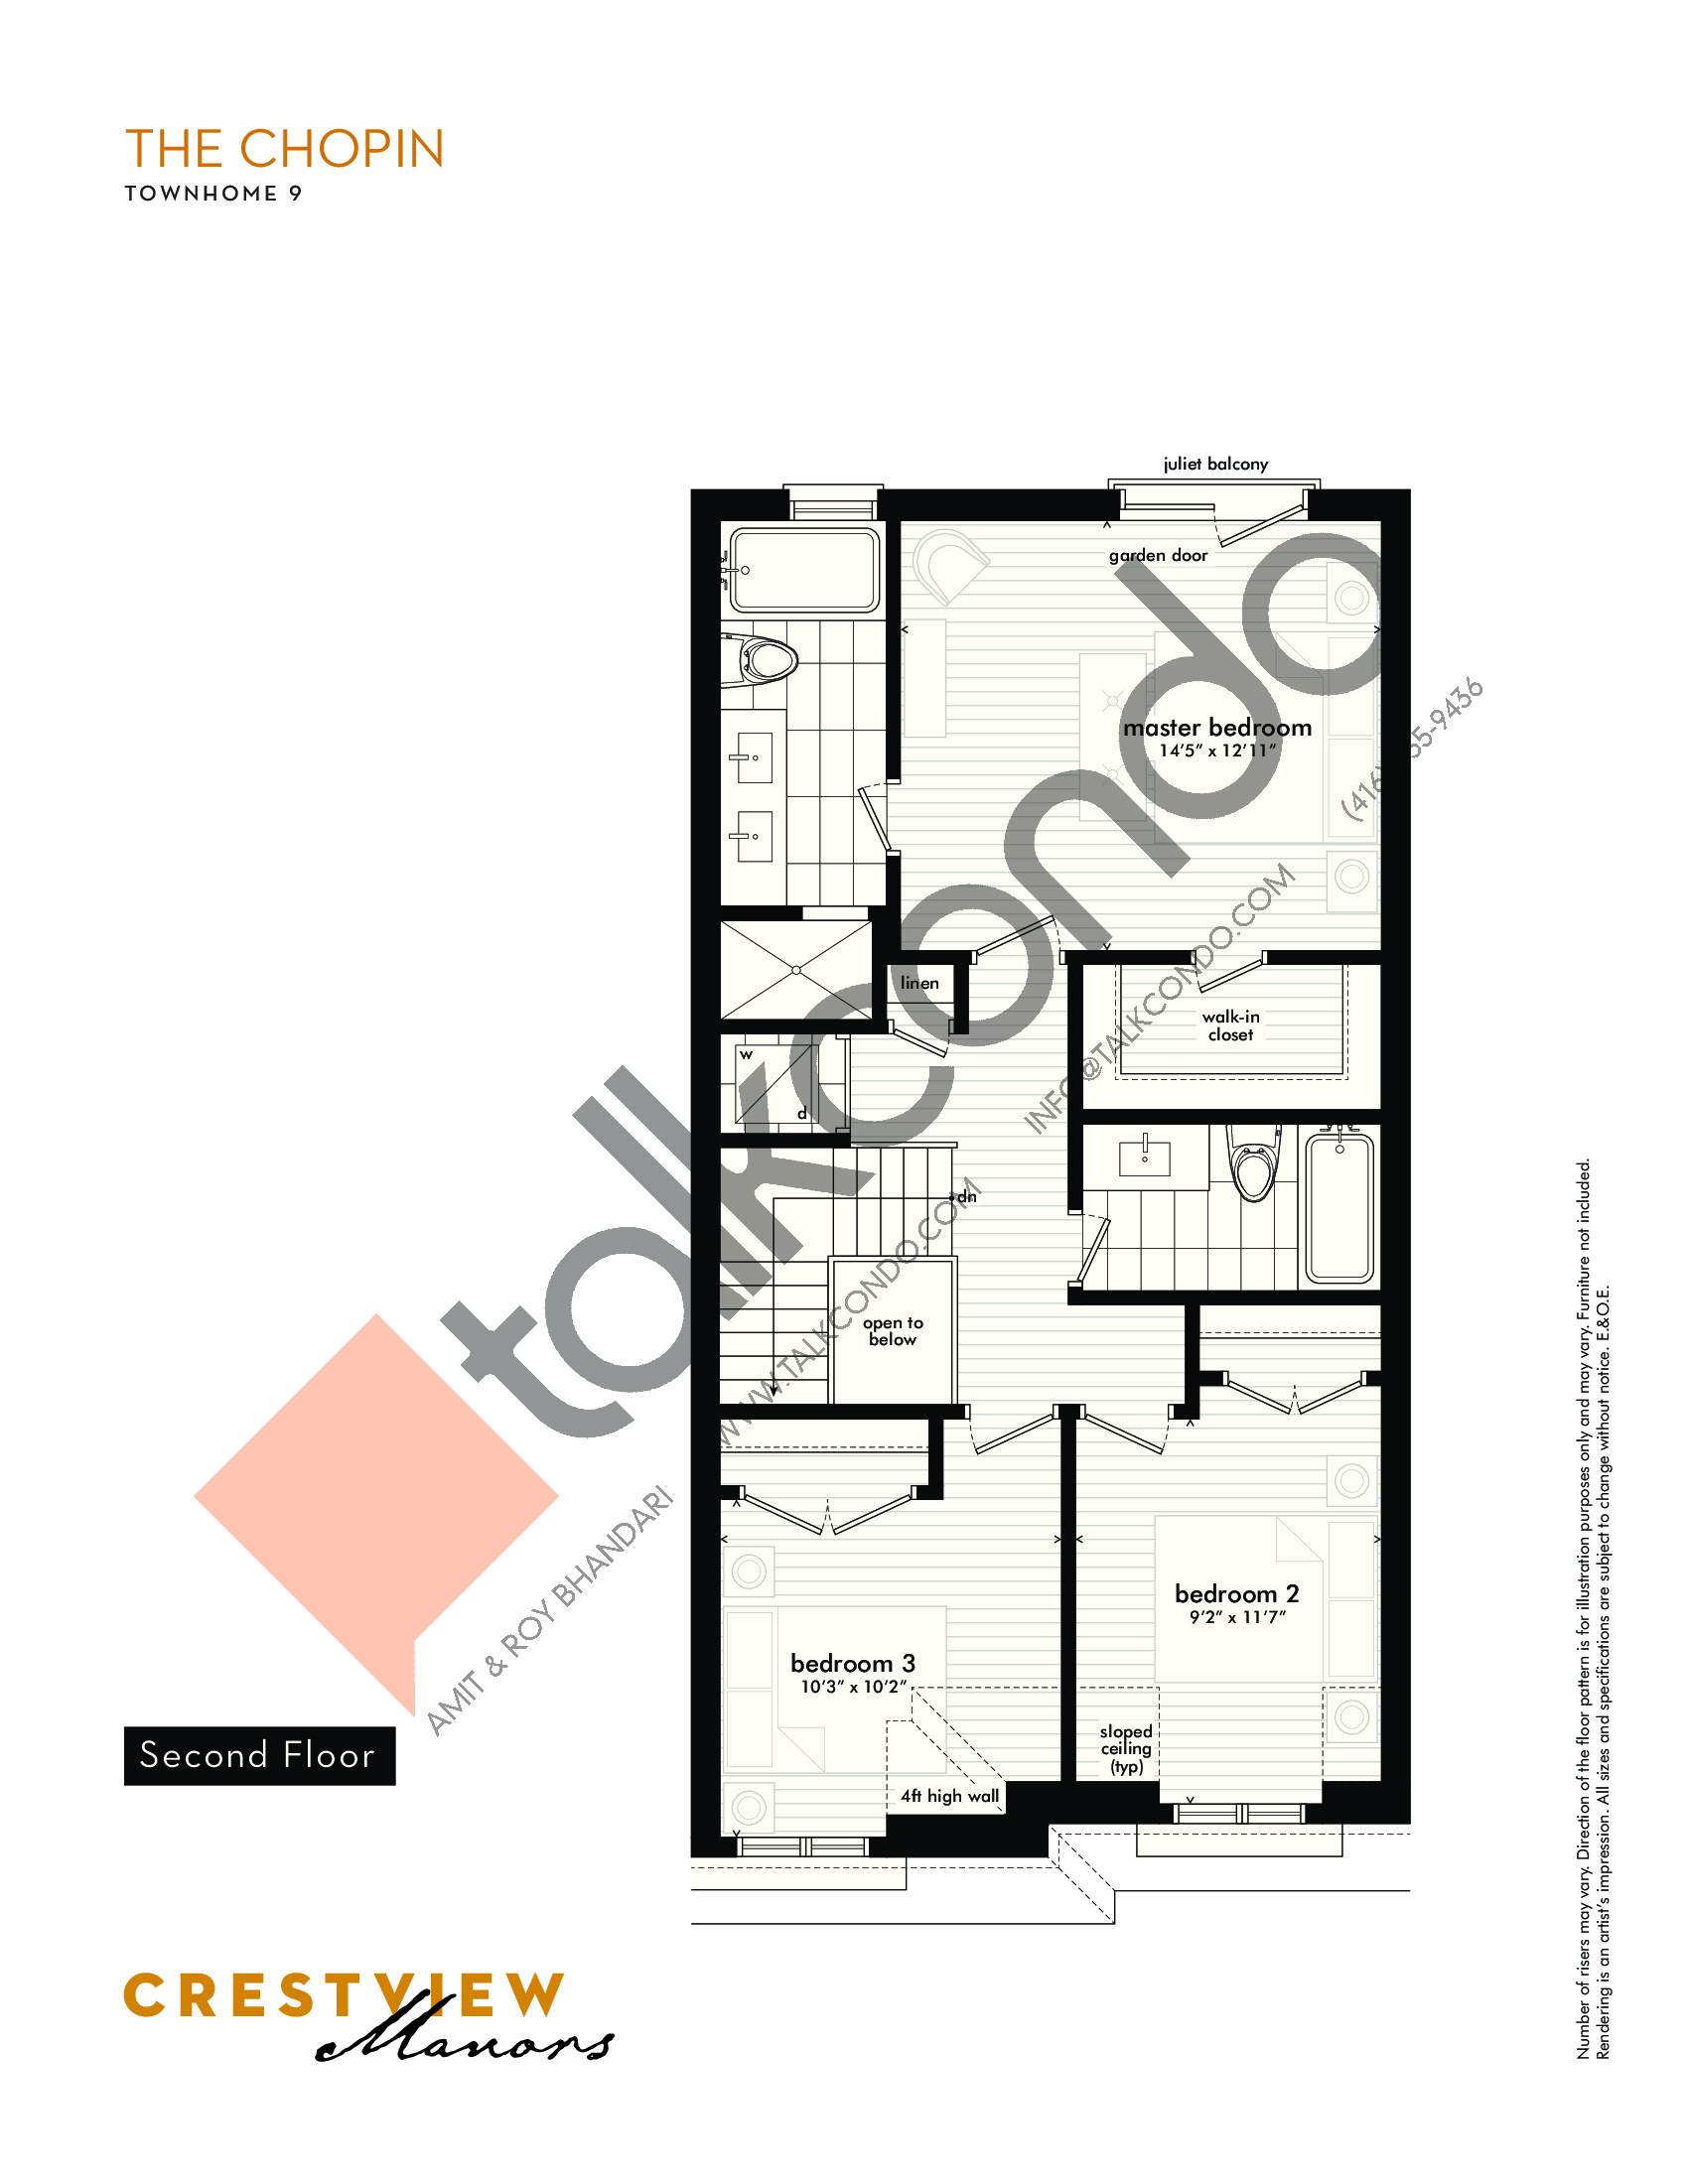 The Chopin - Second Floor Floor Plan at Crestview Manors - 2241 sq.ft